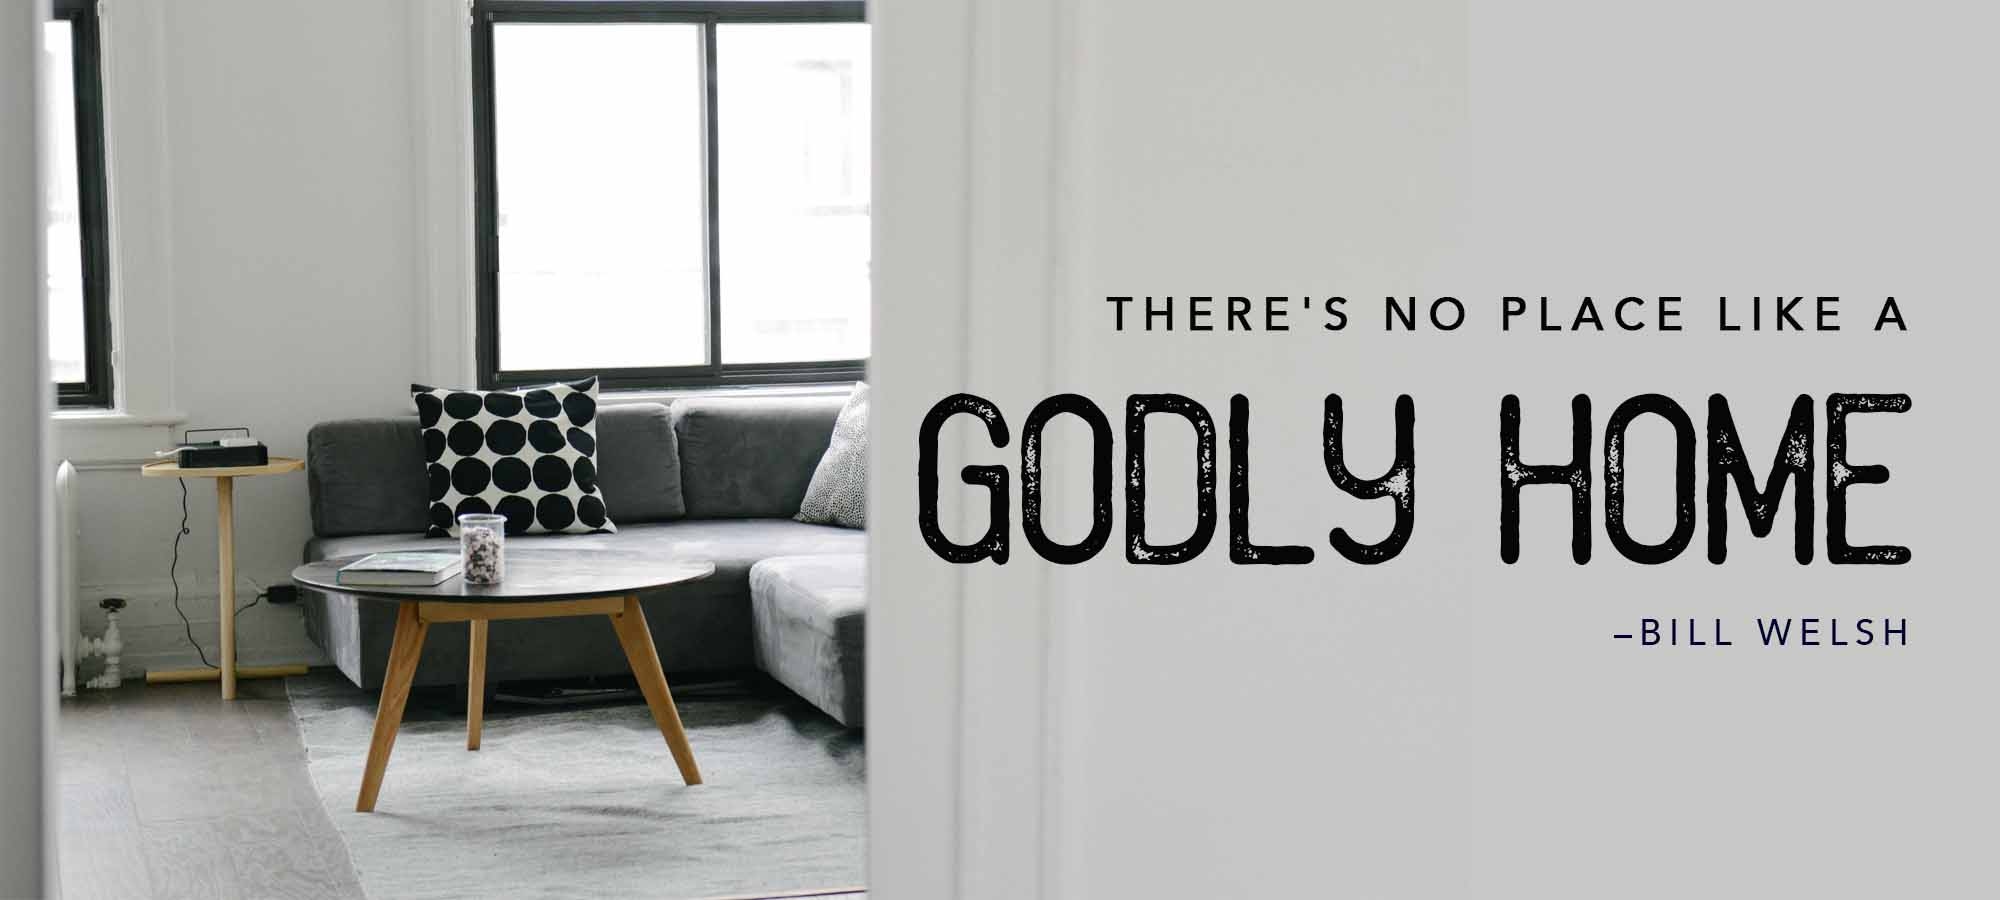 There's No Place Like a Godly Home